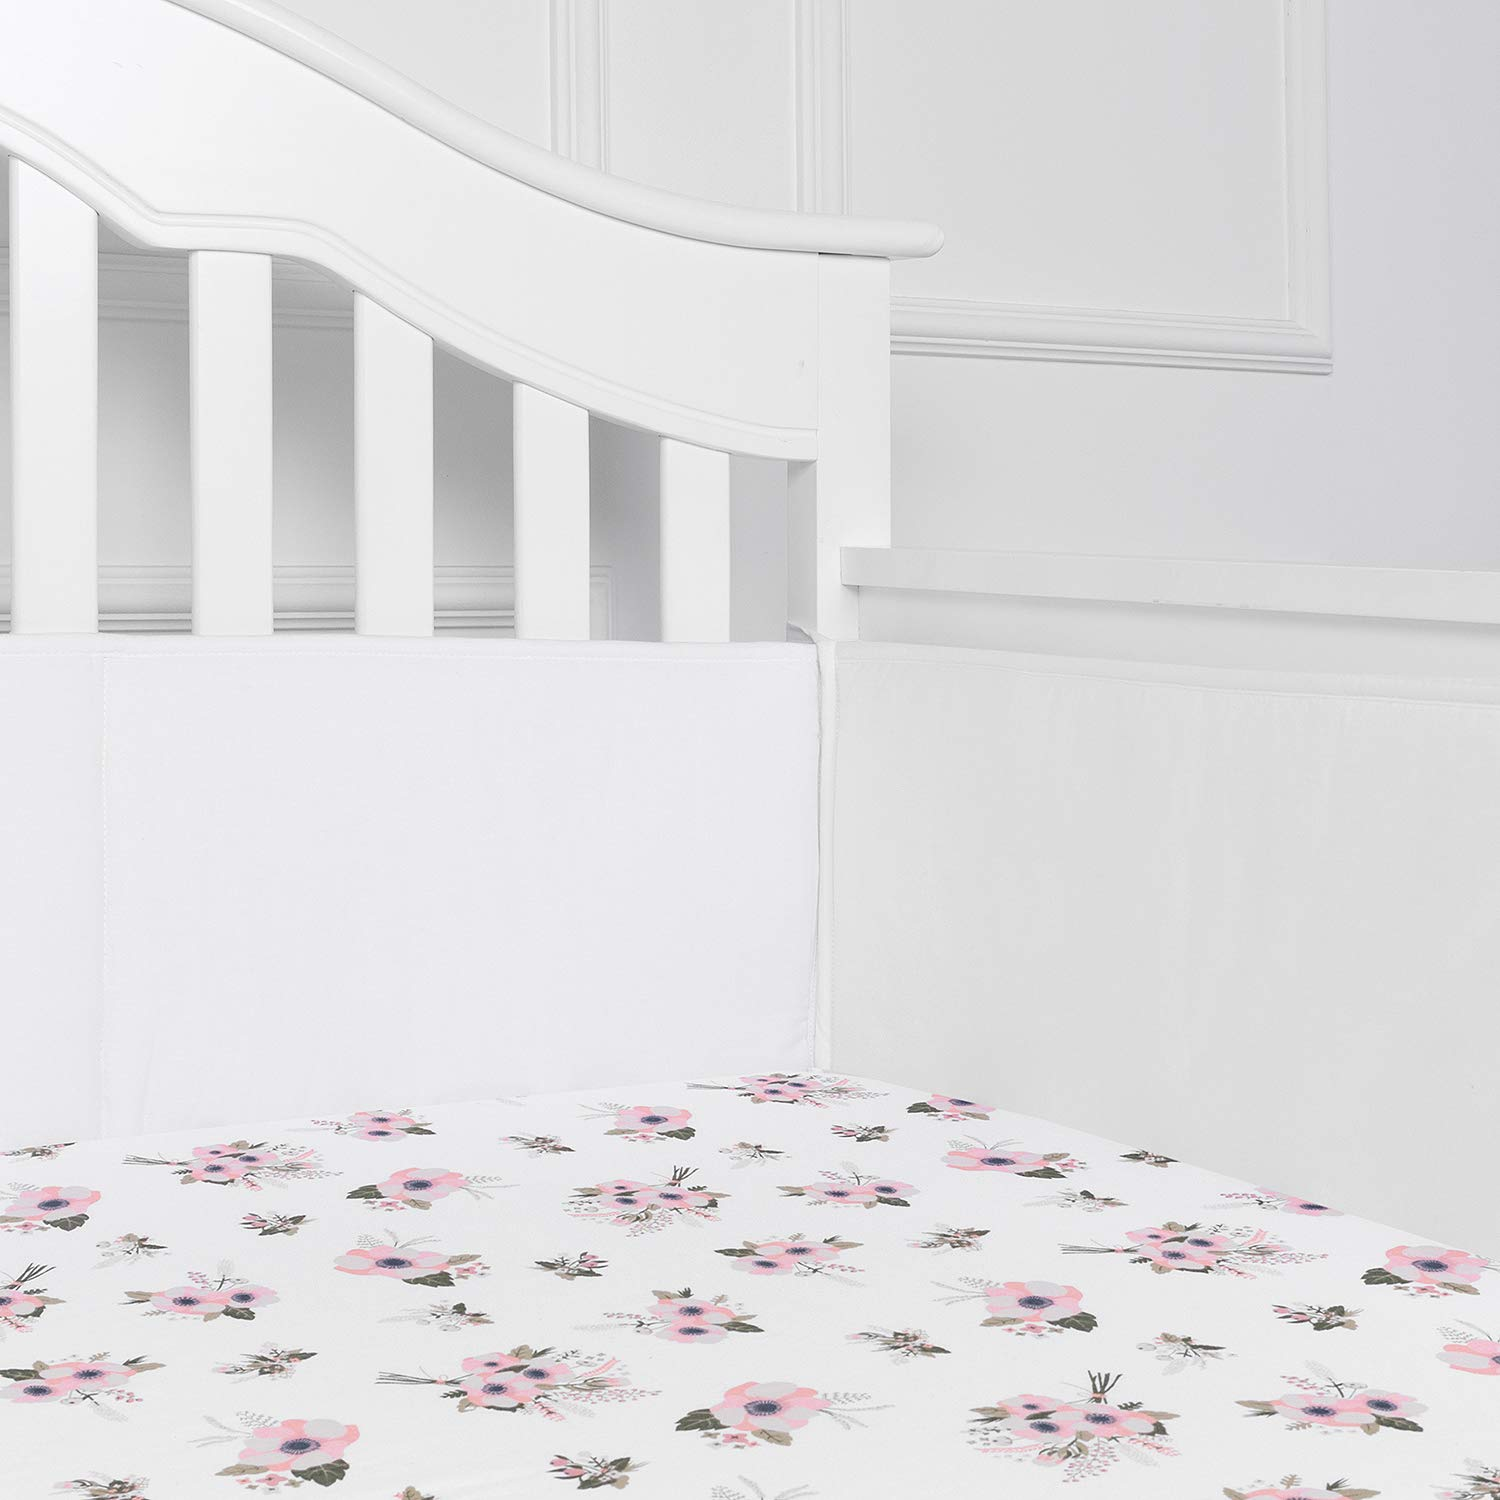 TILLYOU Cotton Collection Baby Safe Crib Bumper Pads for Standard Cribs Machine Washable Padded Crib Liner Thick Padding for Nursery Bed Safe Crib Guards Protector de Cuna, 4 Piece, White